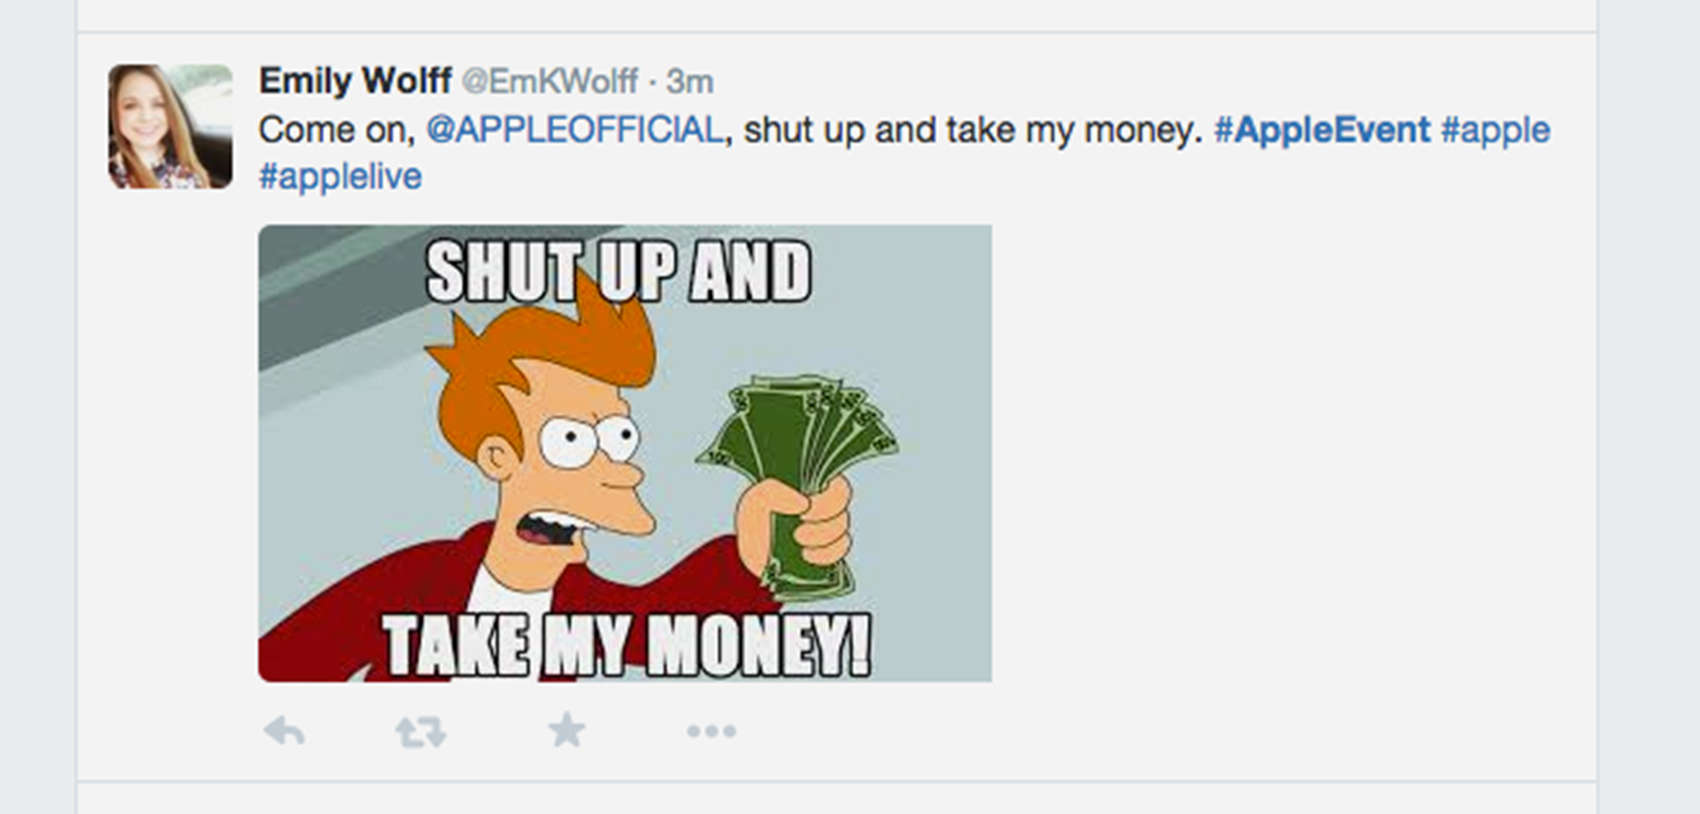 Apple fans on Twitter say they're ready to spend on new devices.